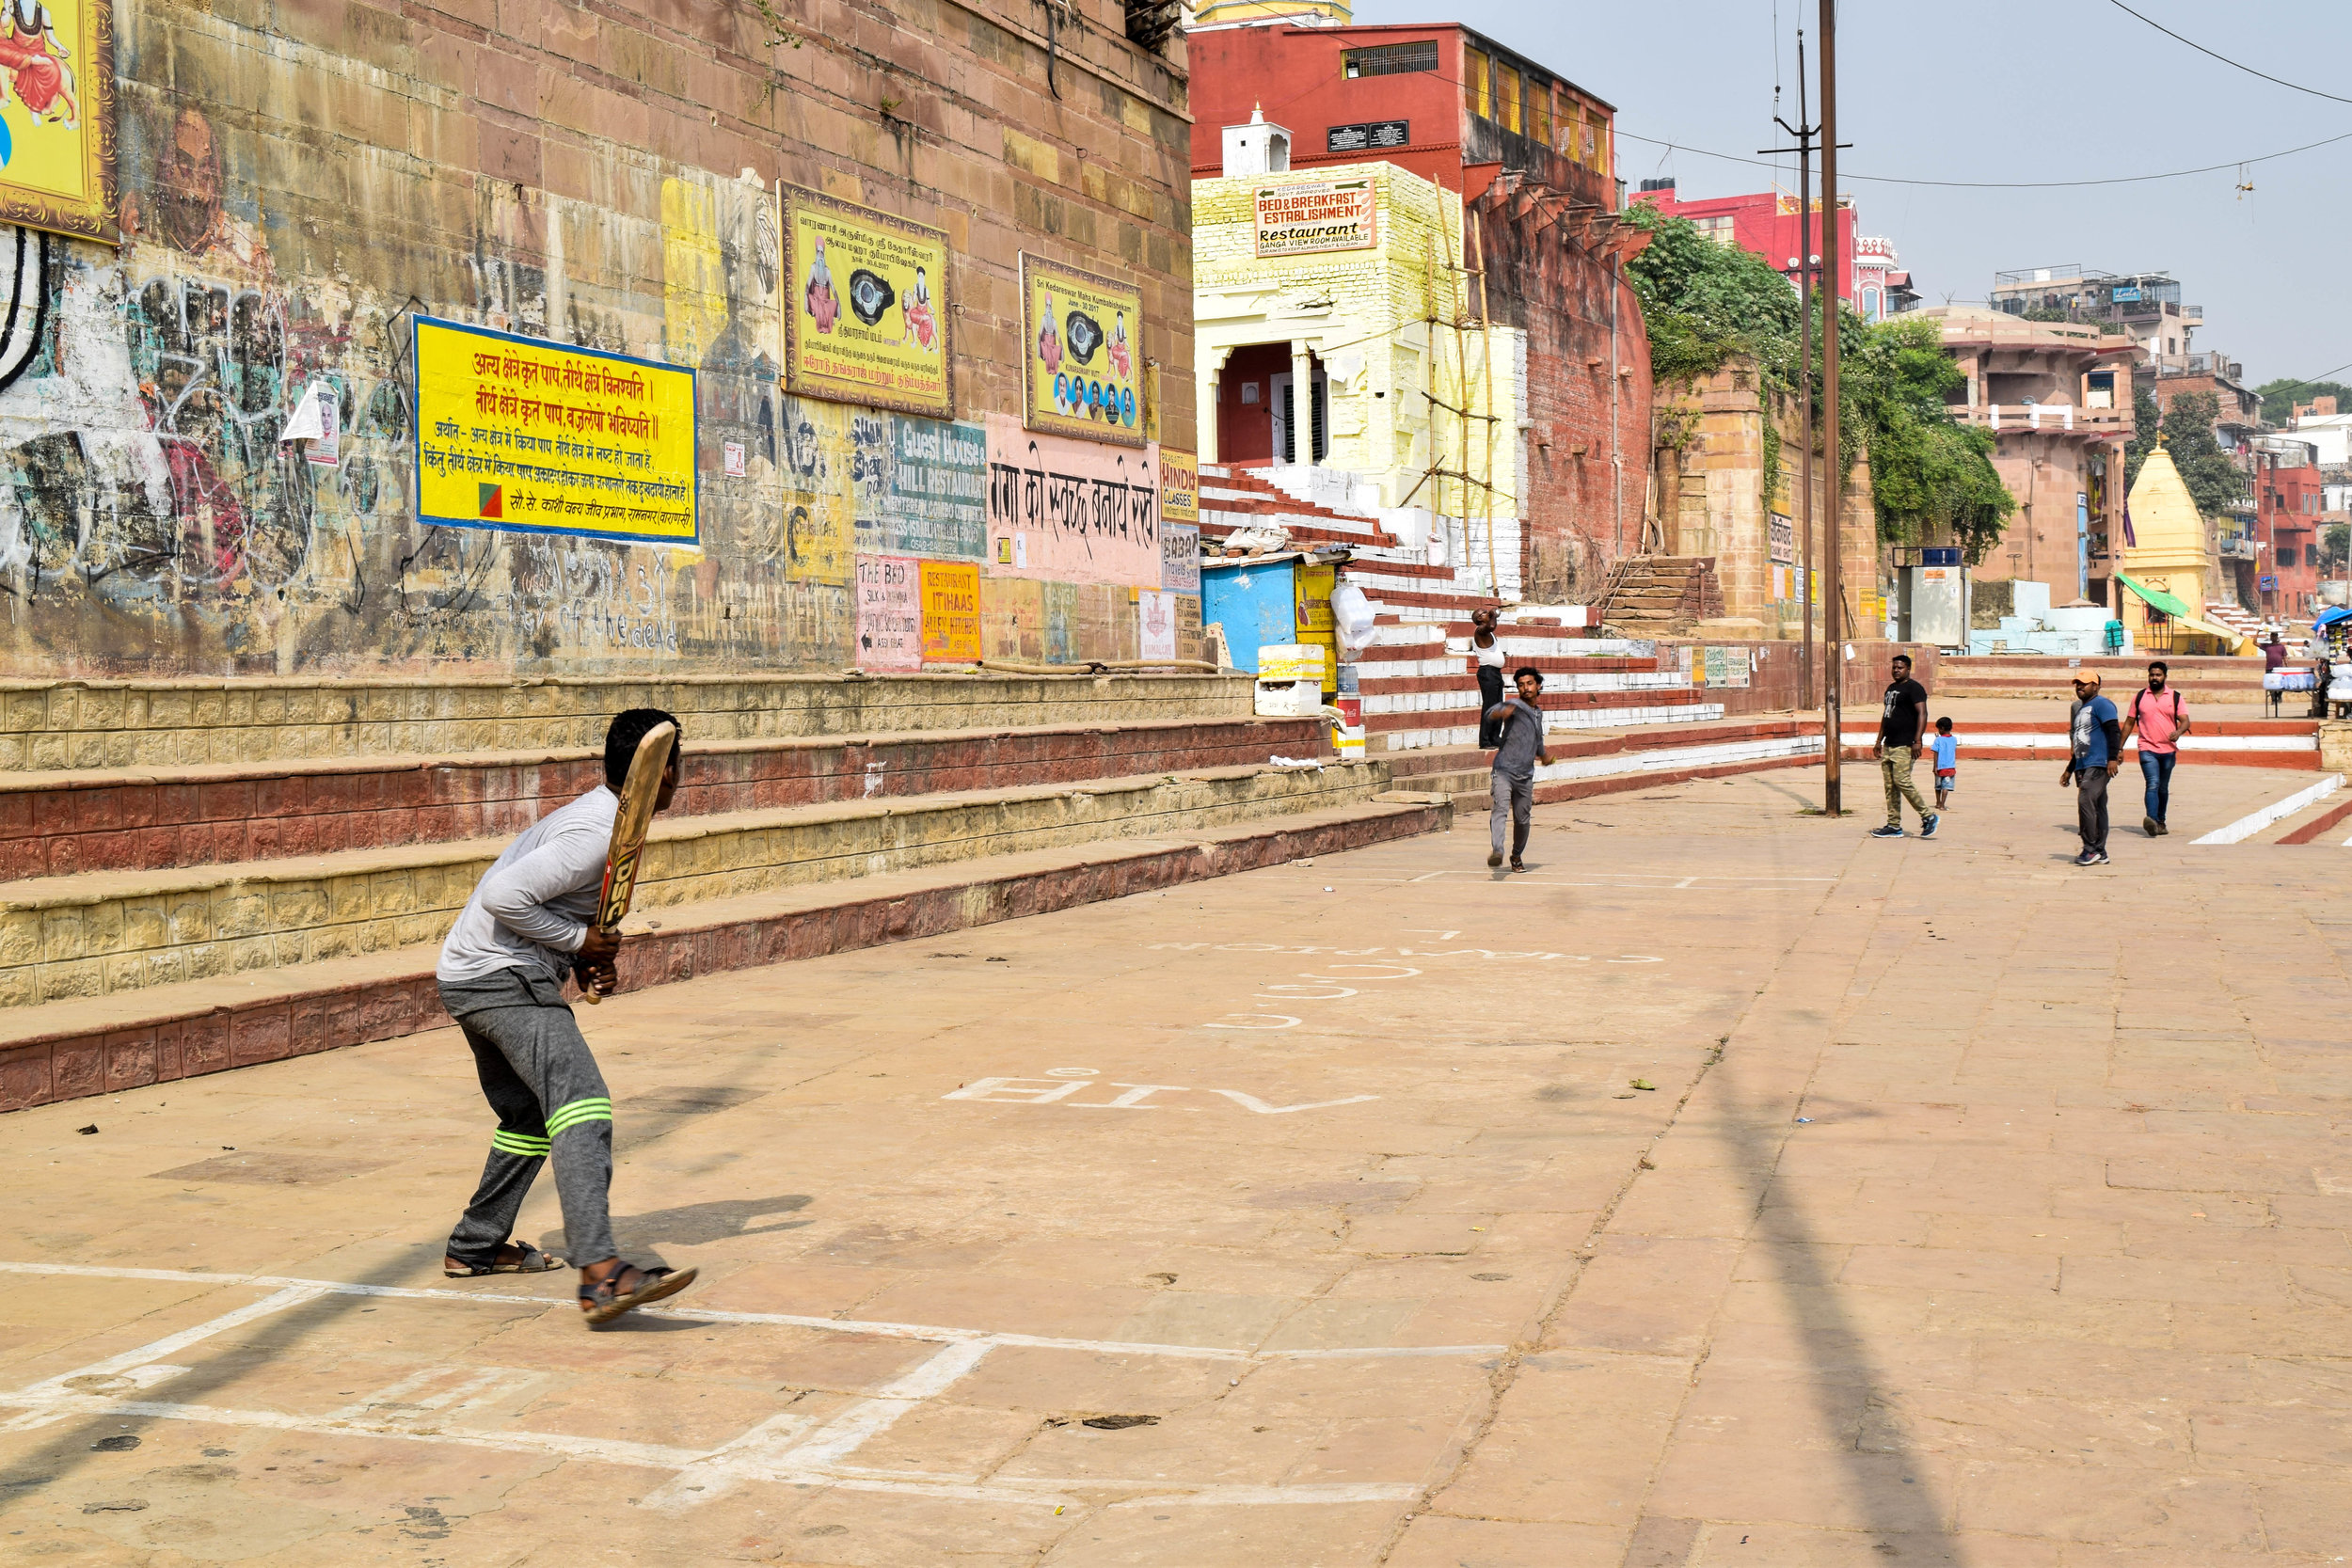 Another popular ghat activity: cricket, apparently.